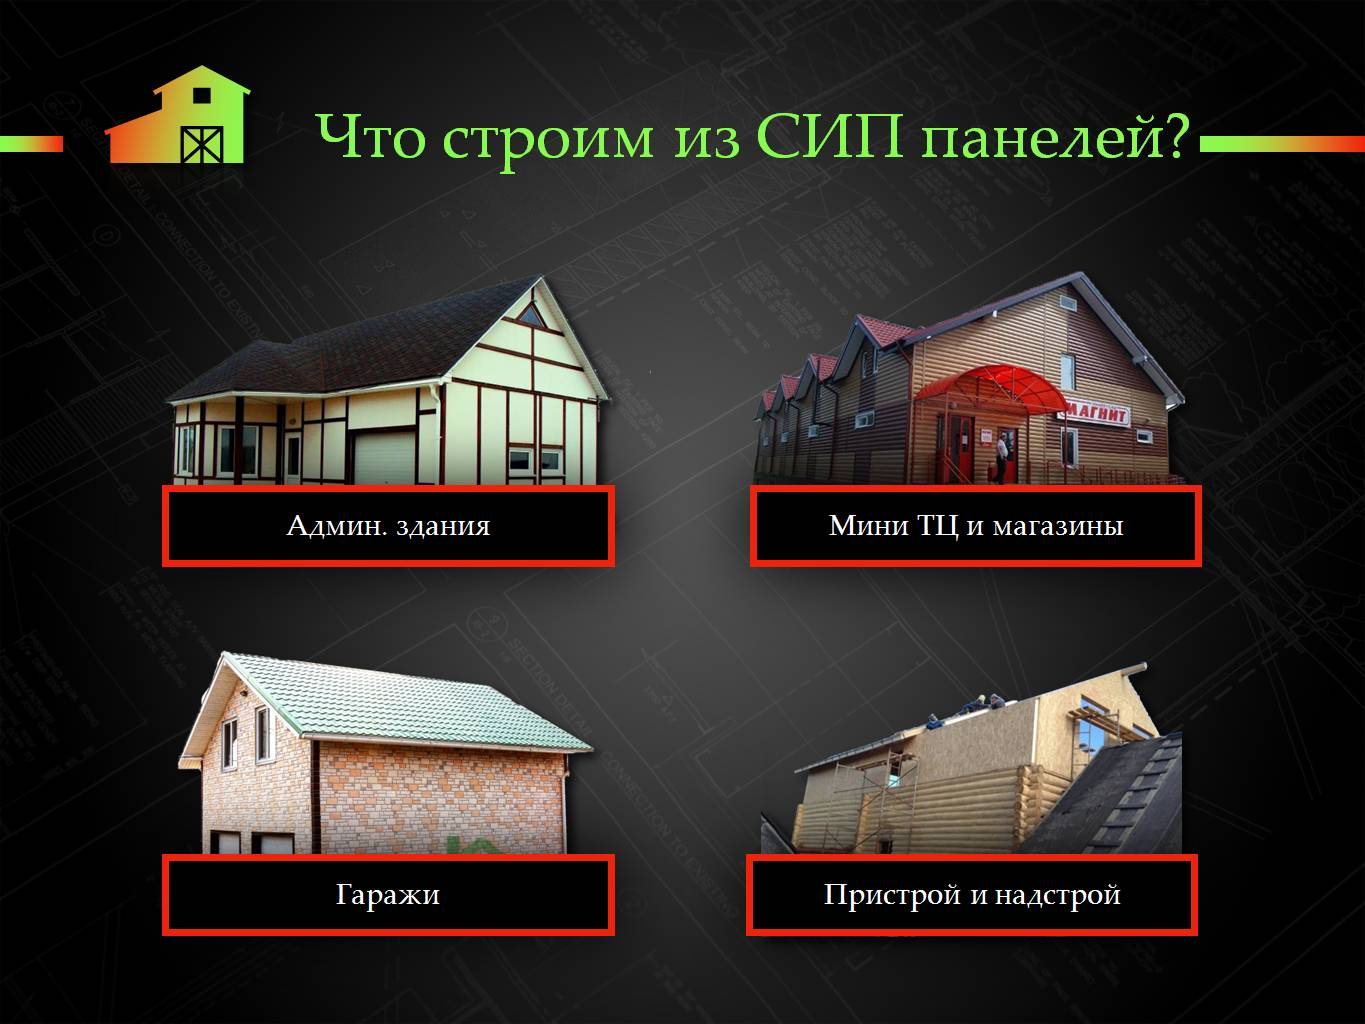 http://ozonhouse.ru/images/upload/Слайд5.JPG